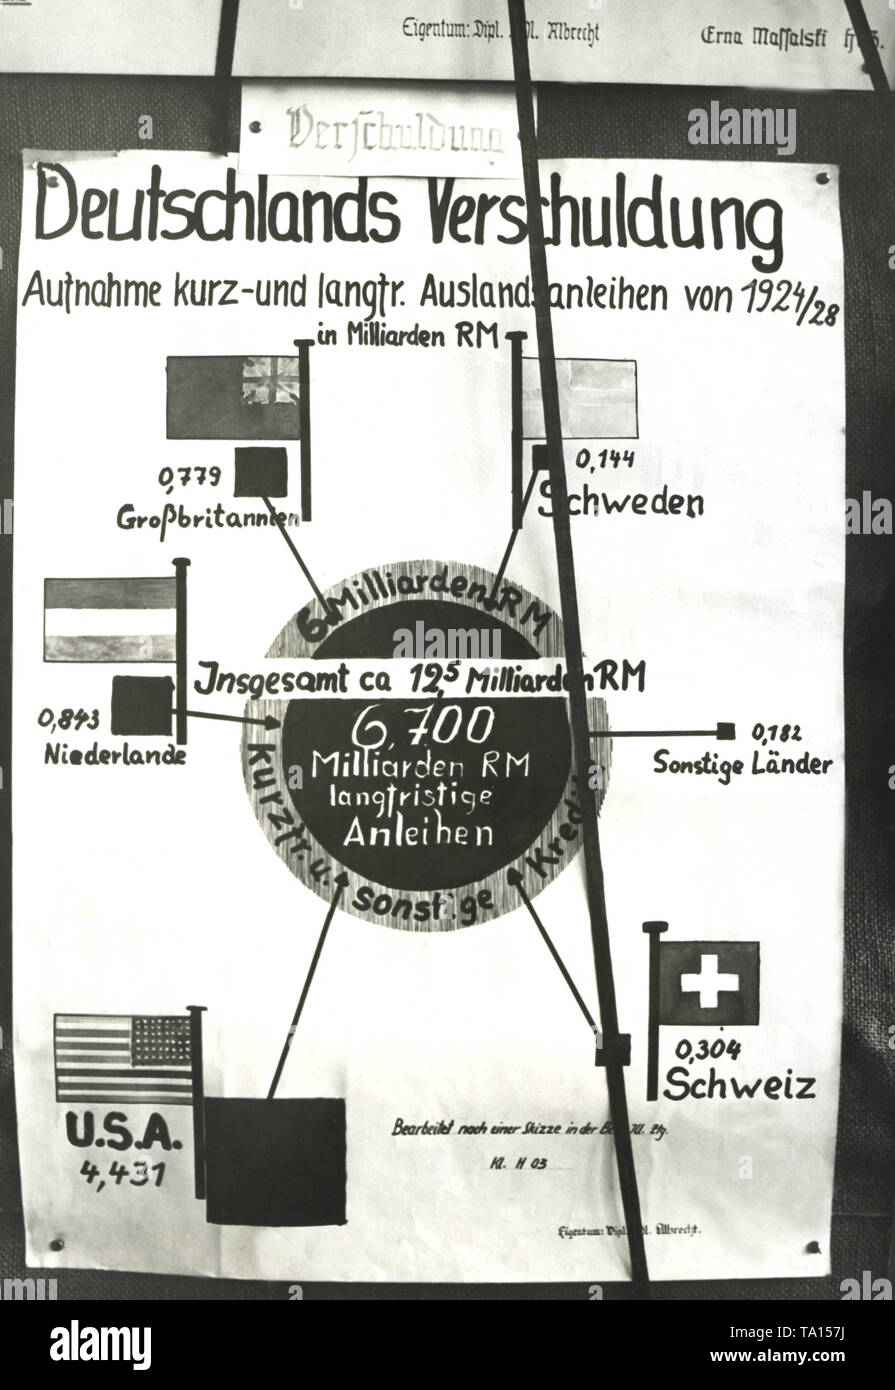 At the exhibition of the Neukoellner Handels-Lehranstalt in the Donaustrasse in Berlin, this work was exhibited by a pupil in the economics department. This is the depiction of the debt of Germany through reparation payments and foreign bonds to the respective countries. - Stock Image